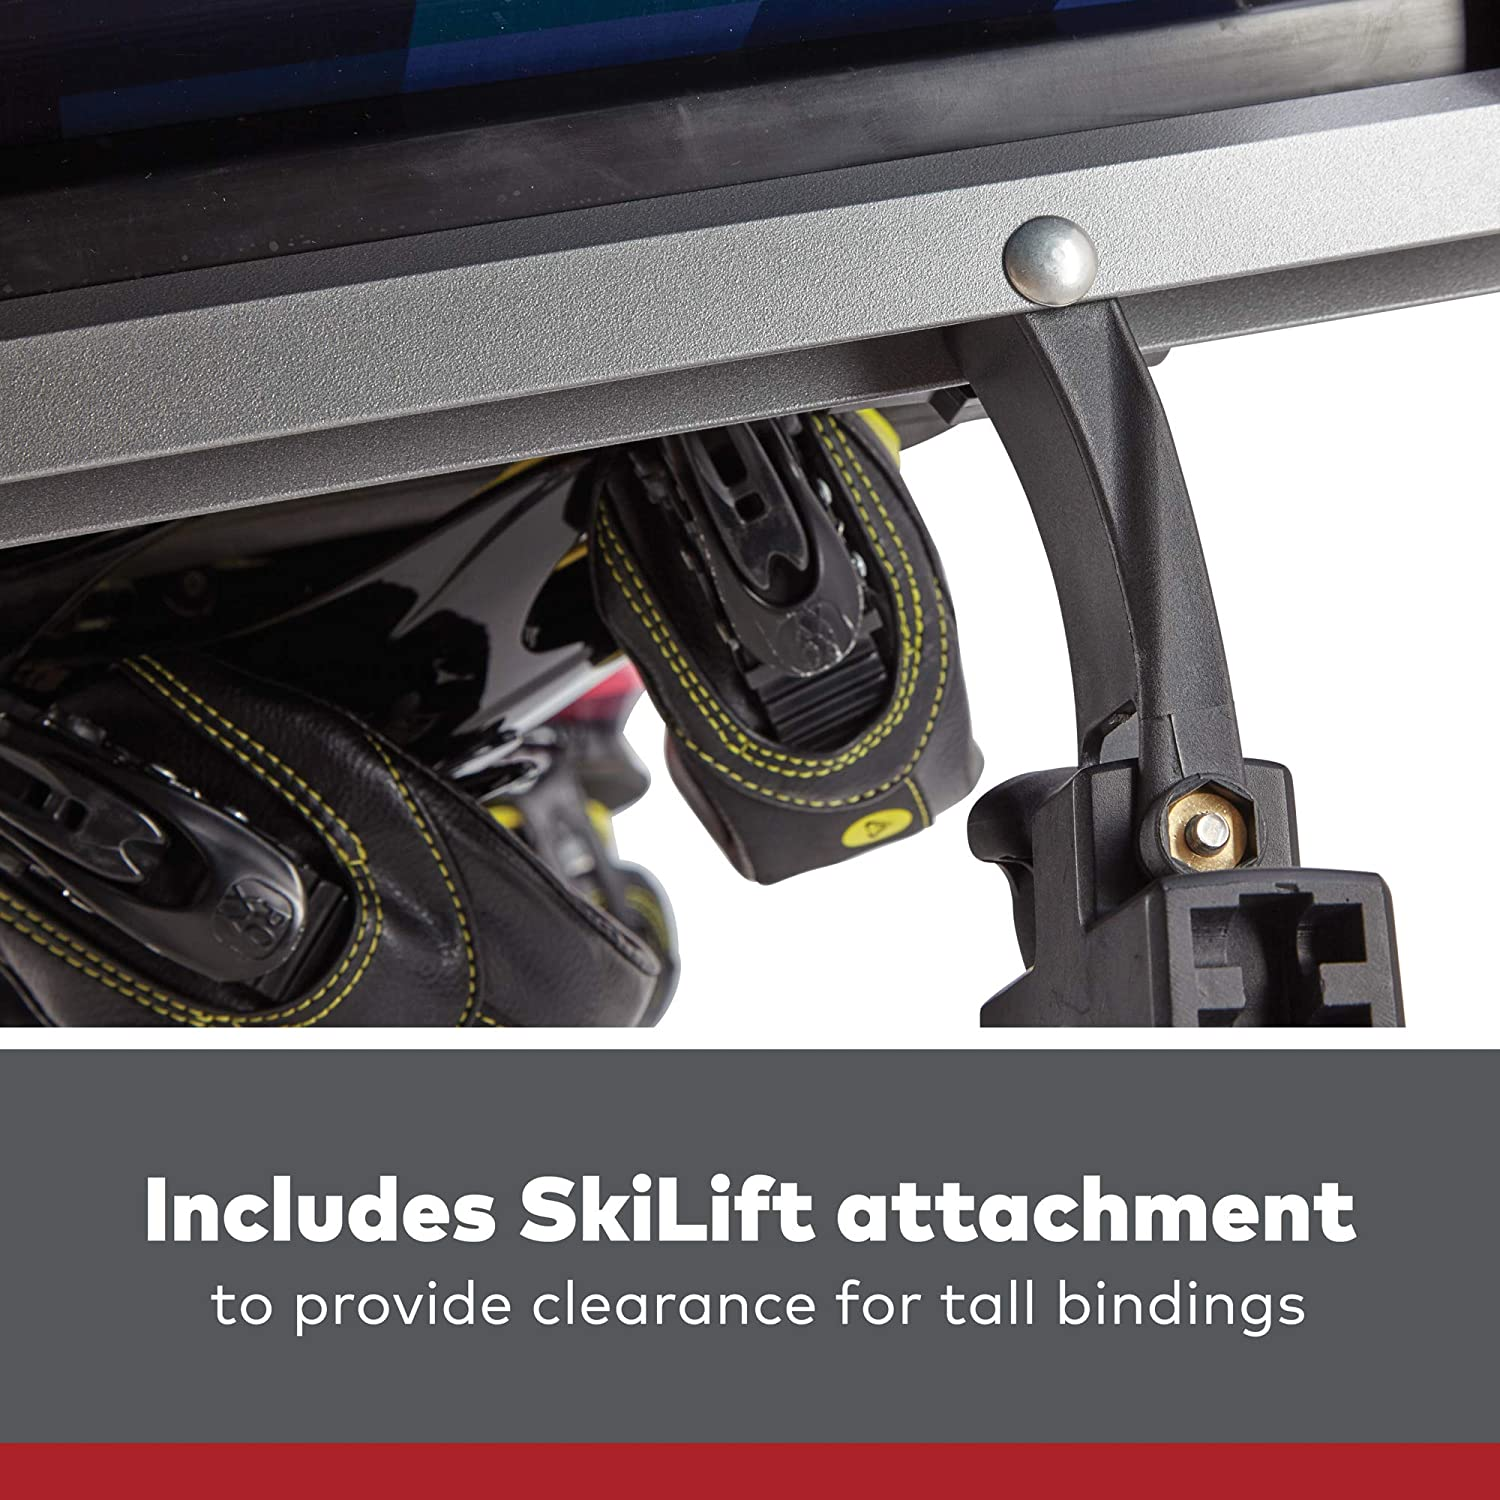 YAKIMA Fits Up to 6 Pairs of Skis or 4 Snowboards Fits Most Roof Racks FreshTrack 6 Ski /& Snowboard Mount